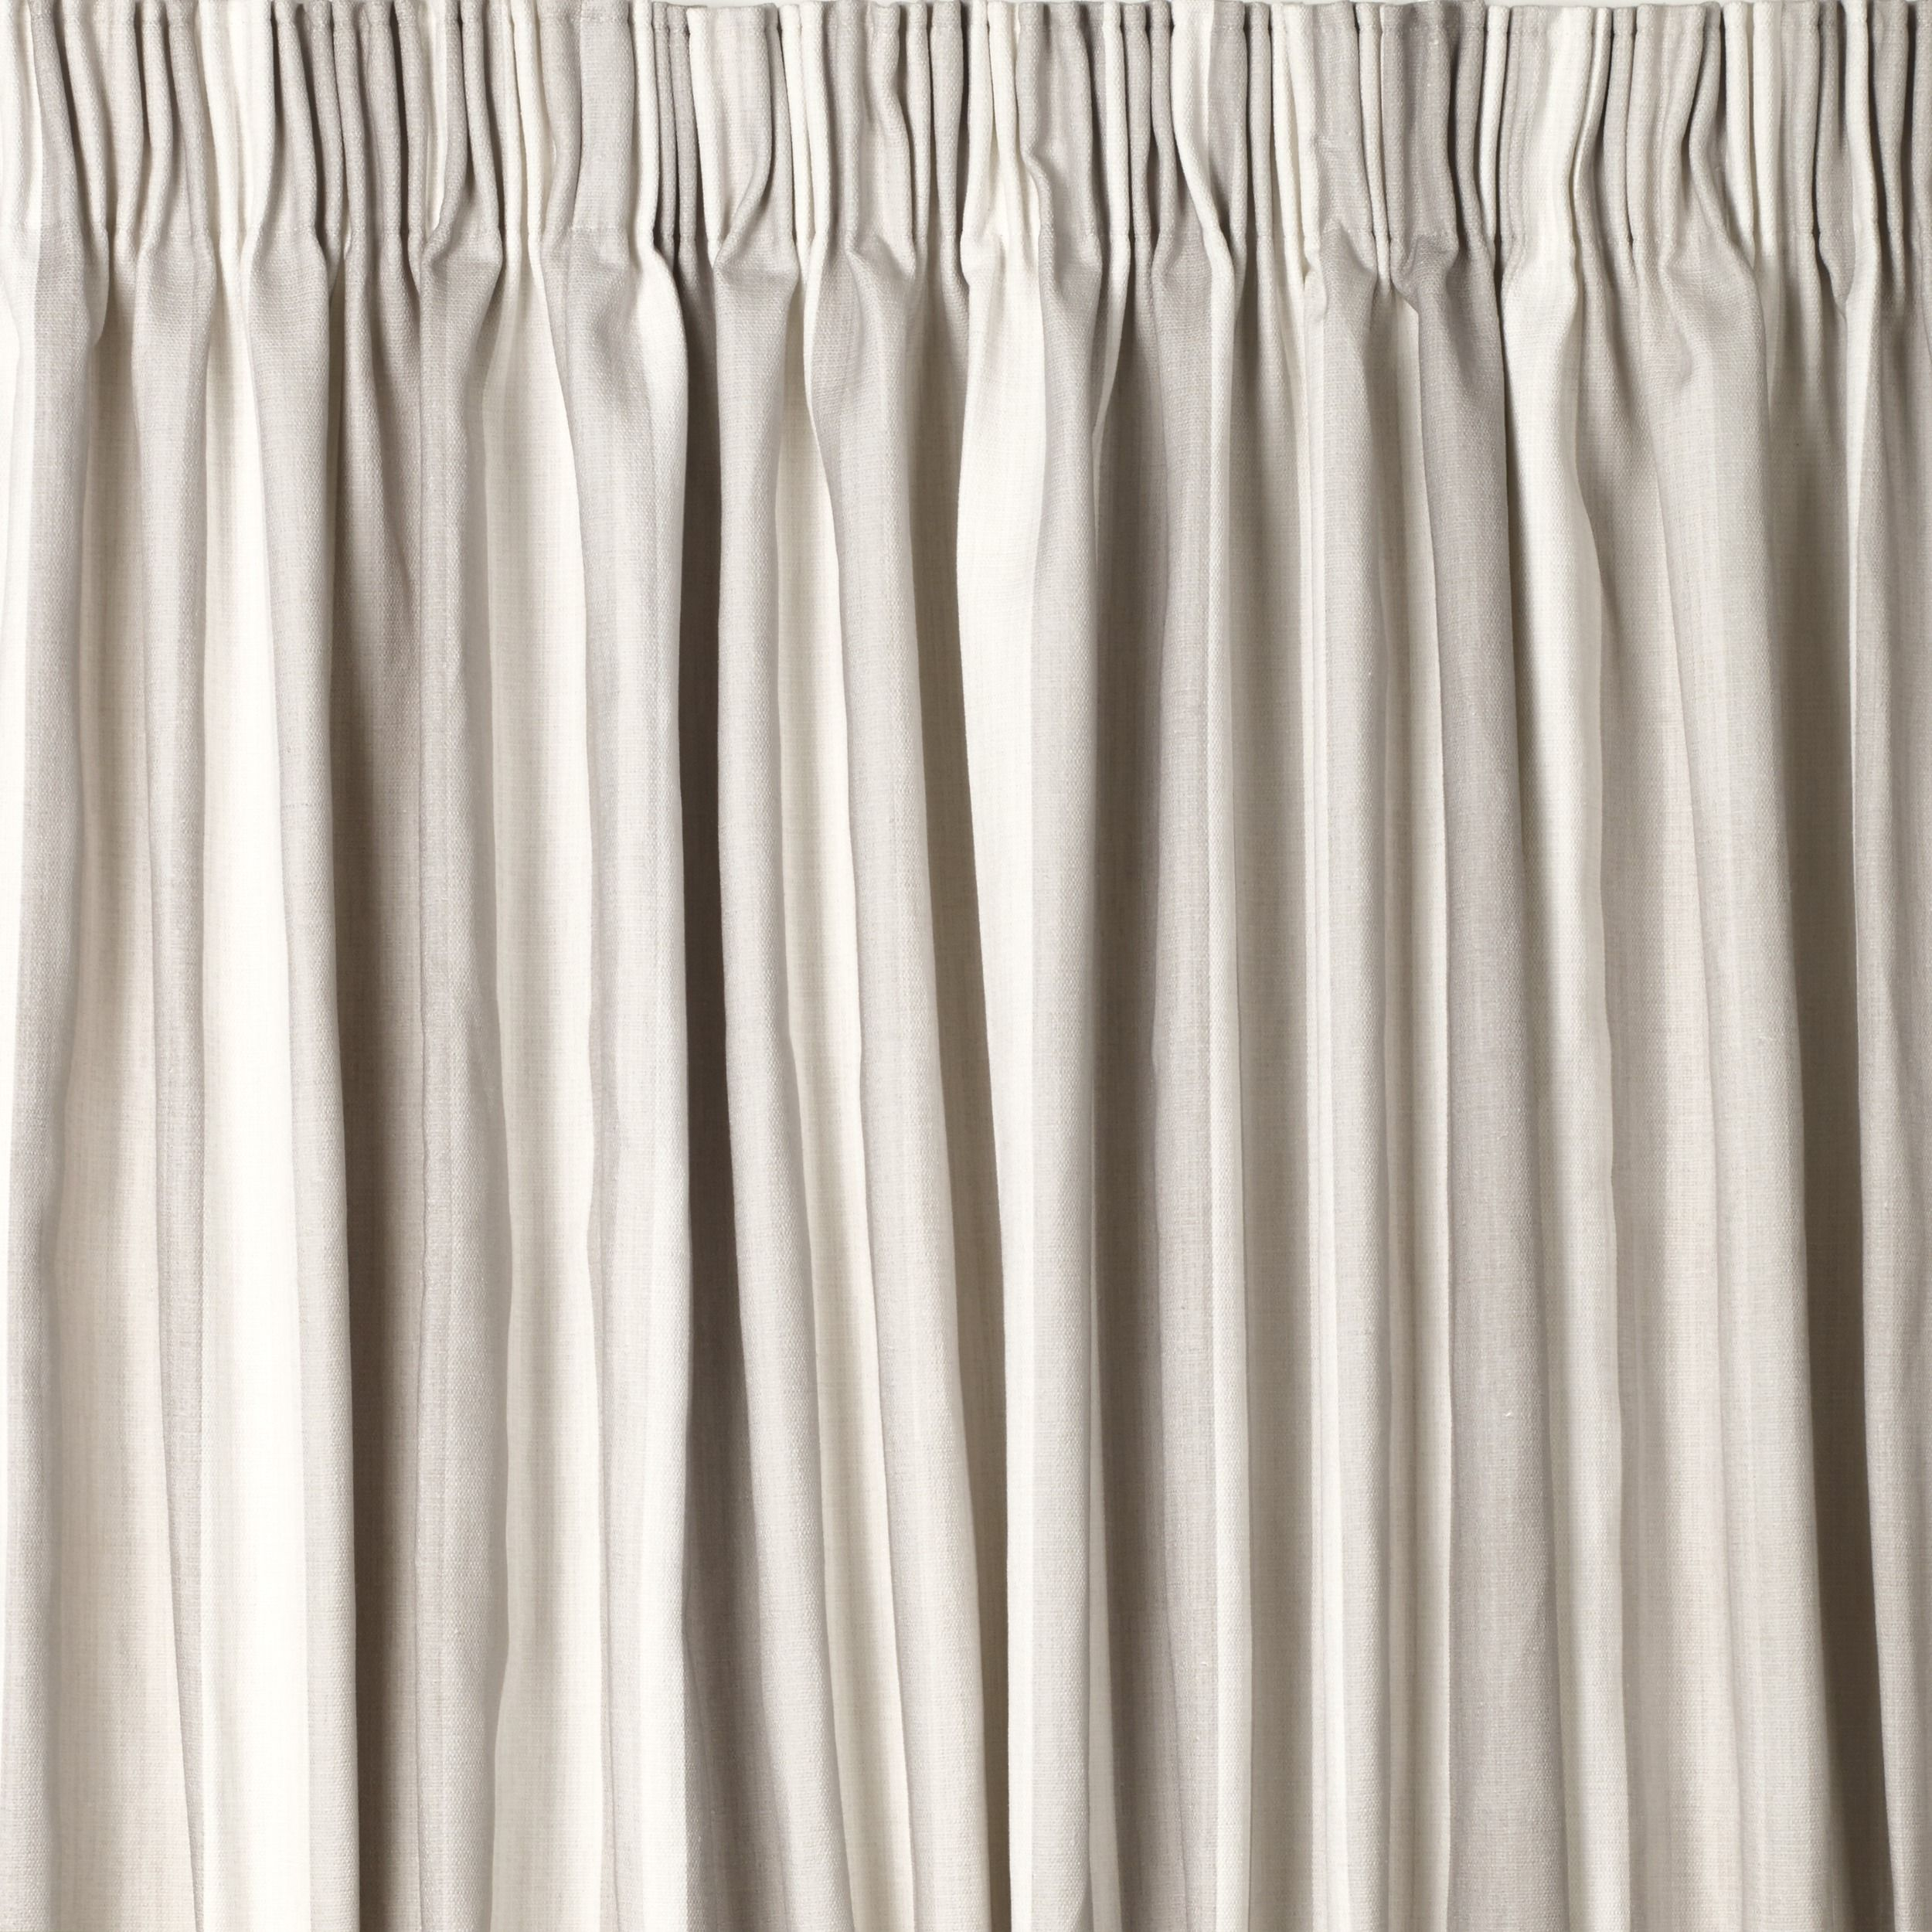 chambray these curtains cotton pin and savvy trendy design curtain set print geo with a